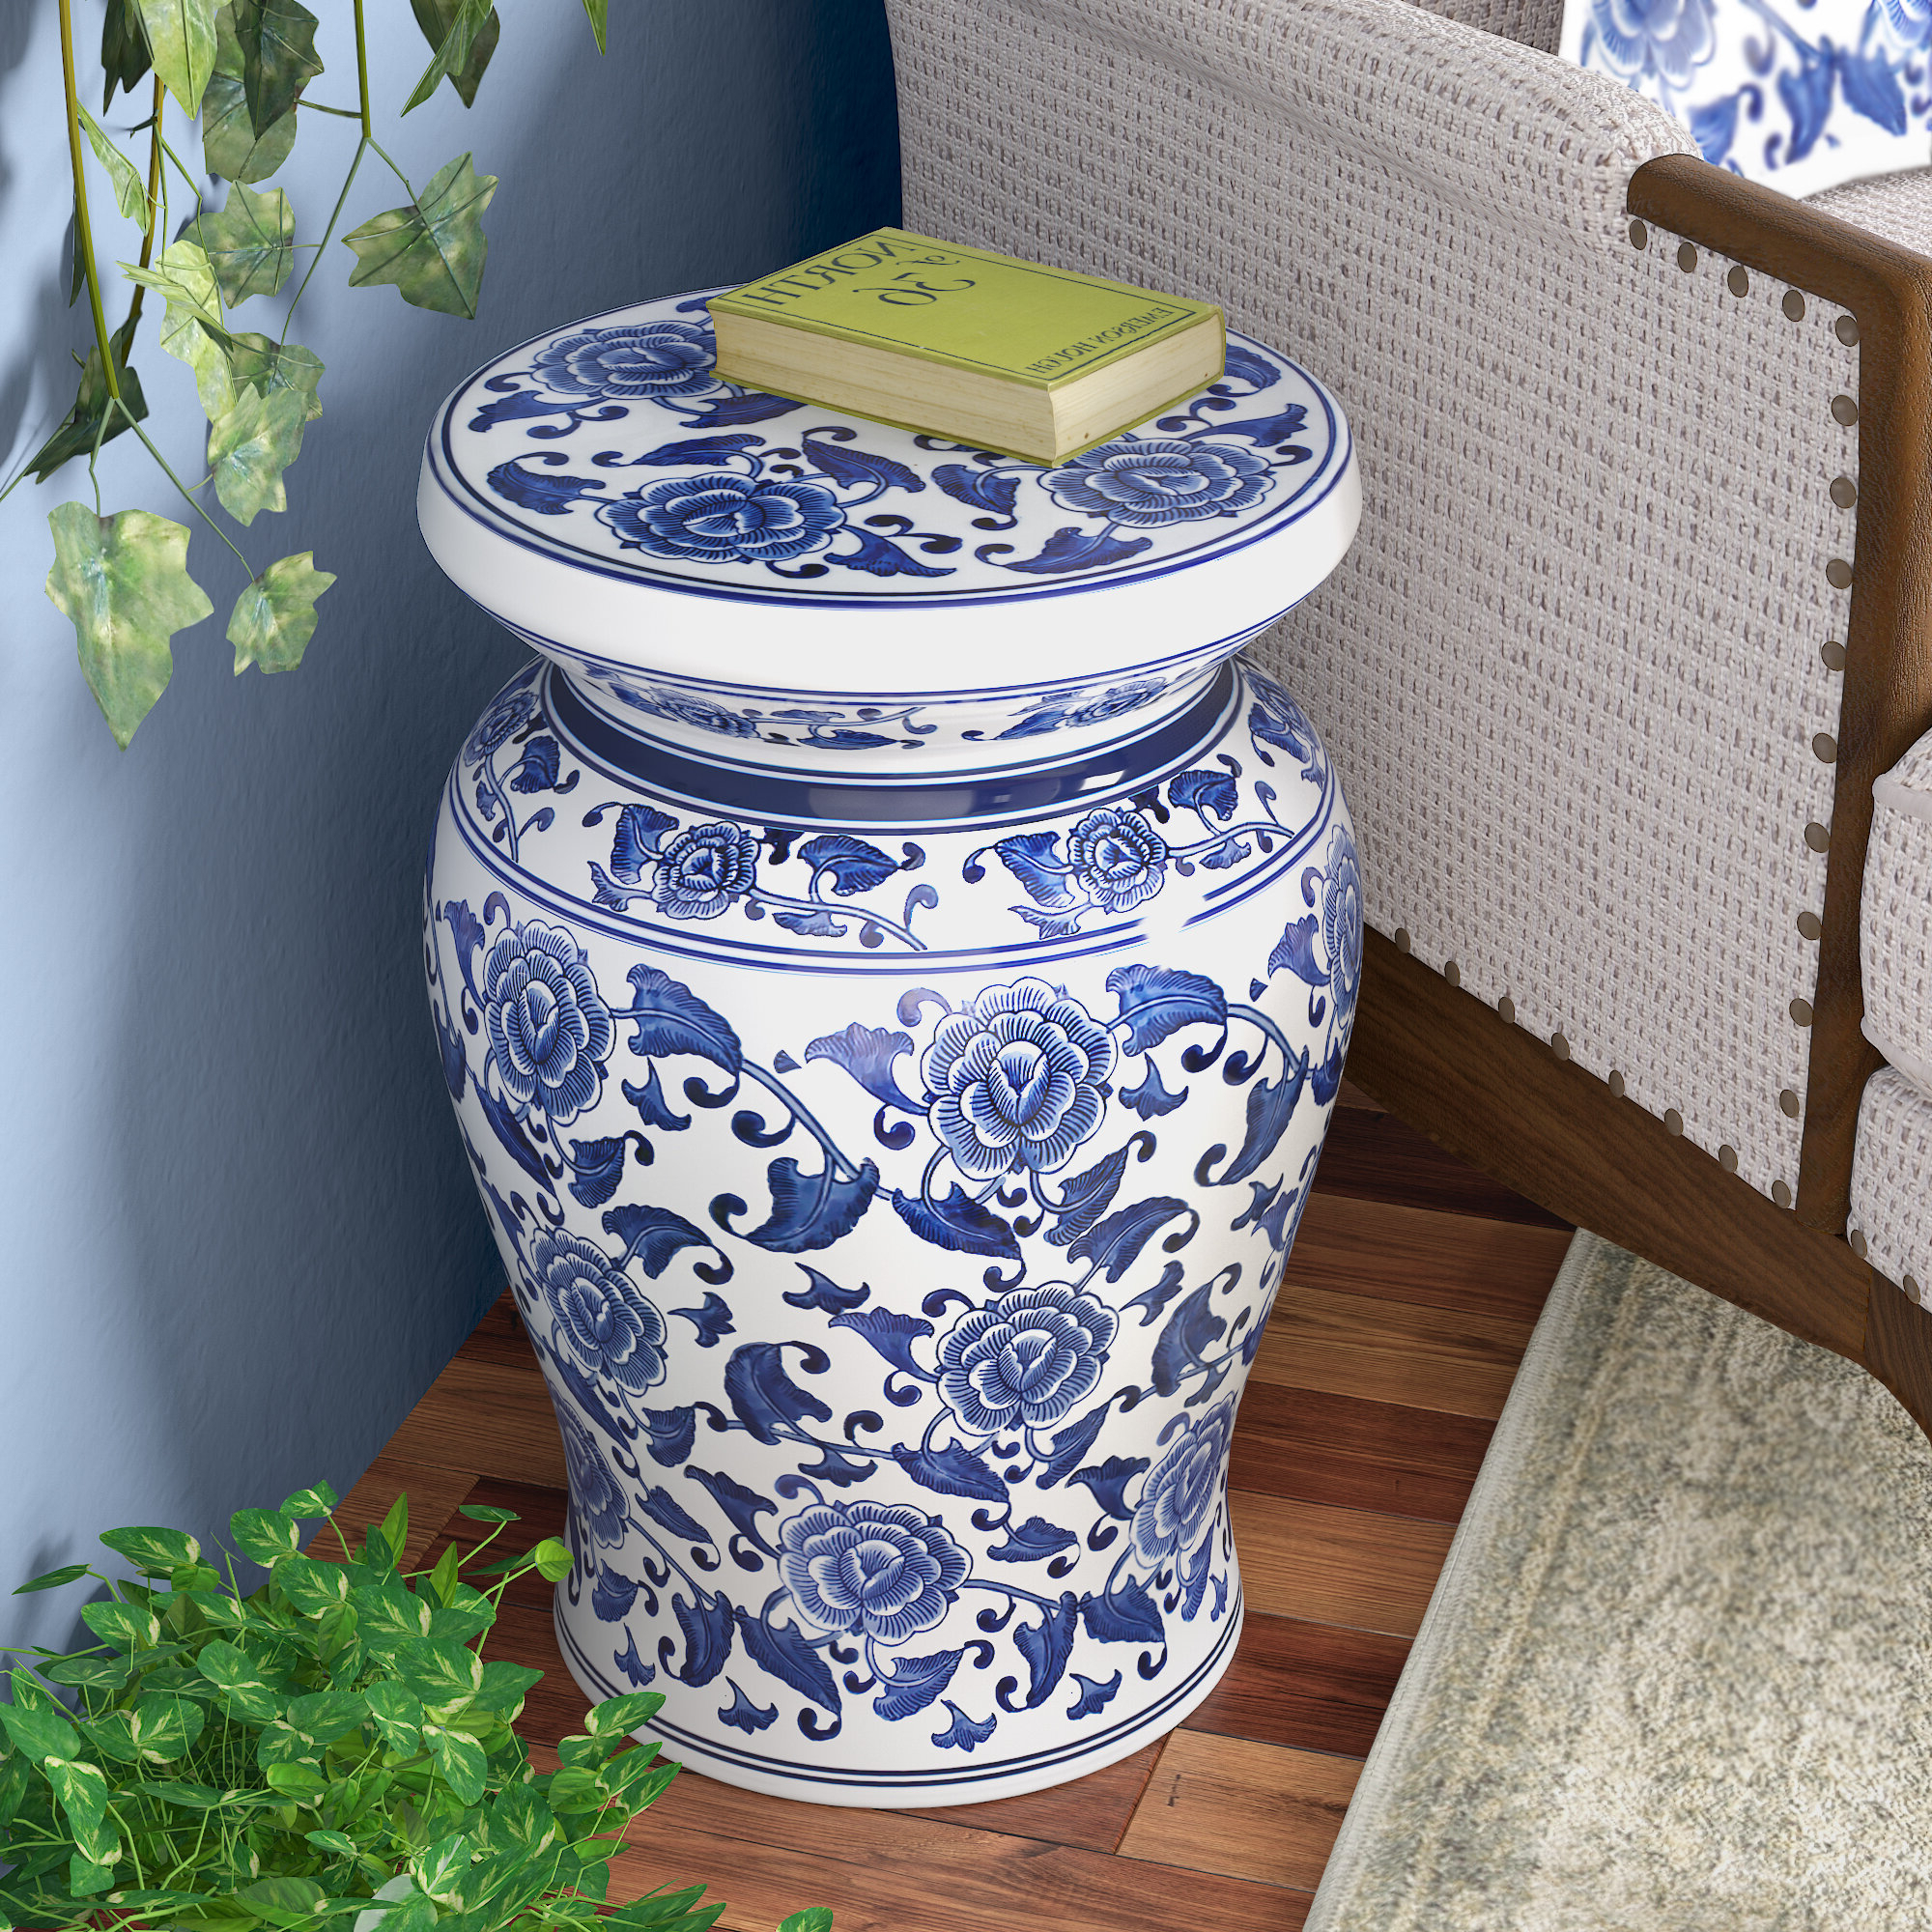 Widely Used Southsea Ceramic Garden Stool With Regard To Holbæk Garden Stools (View 5 of 30)